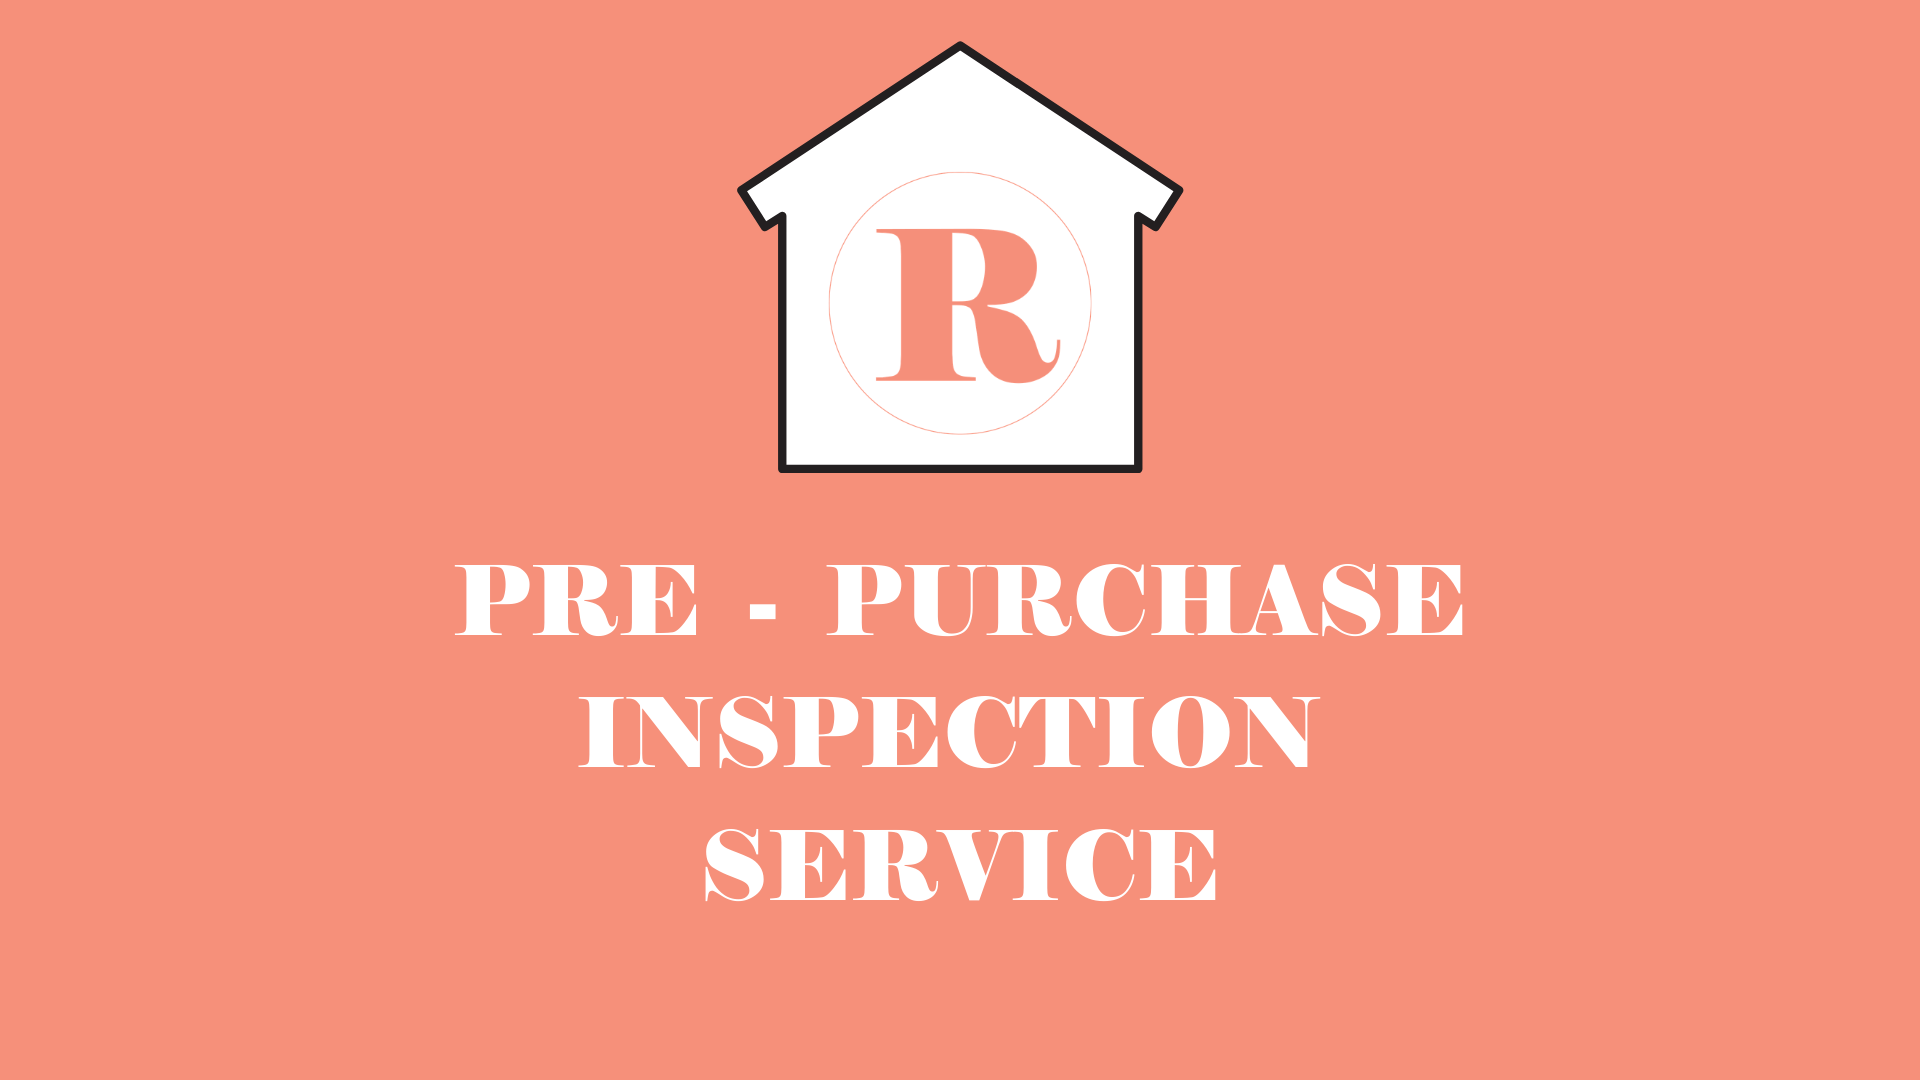 Pre PURCHASE INSPECTION with BUILDING